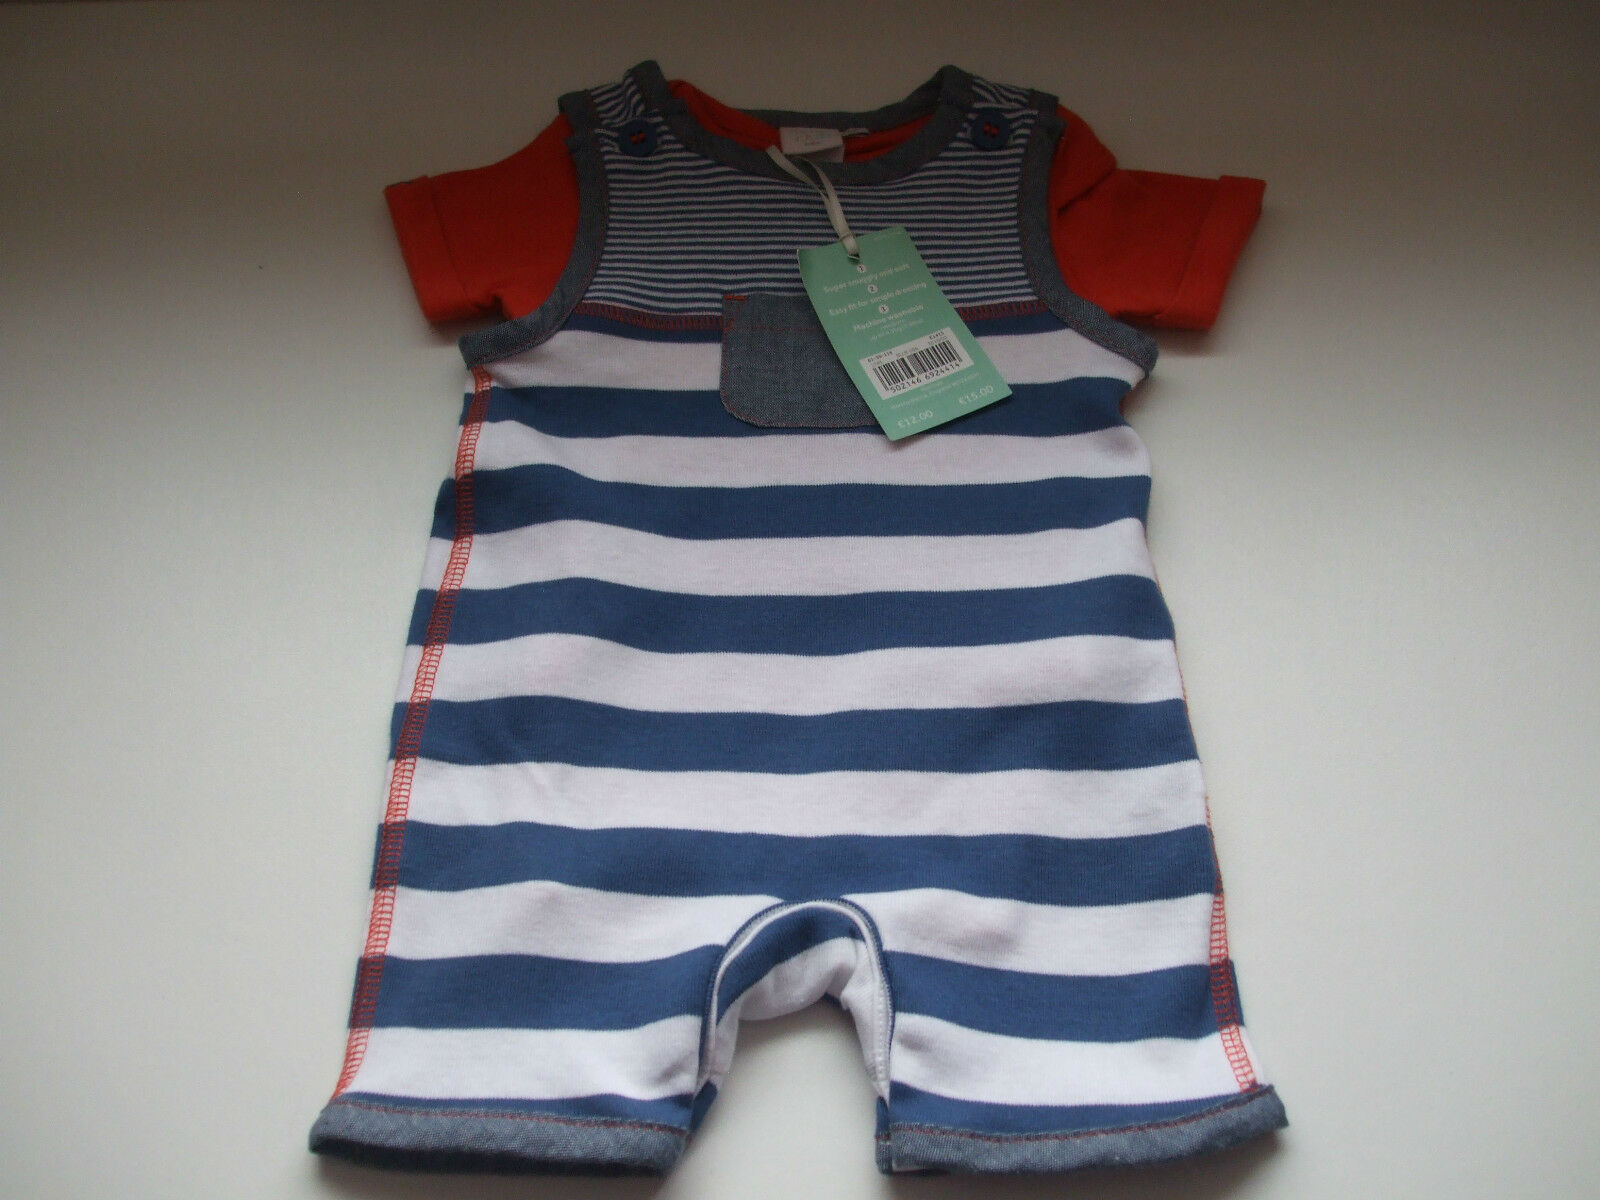 Baby & Toddler Clothing Clothing Shoes & Accessories